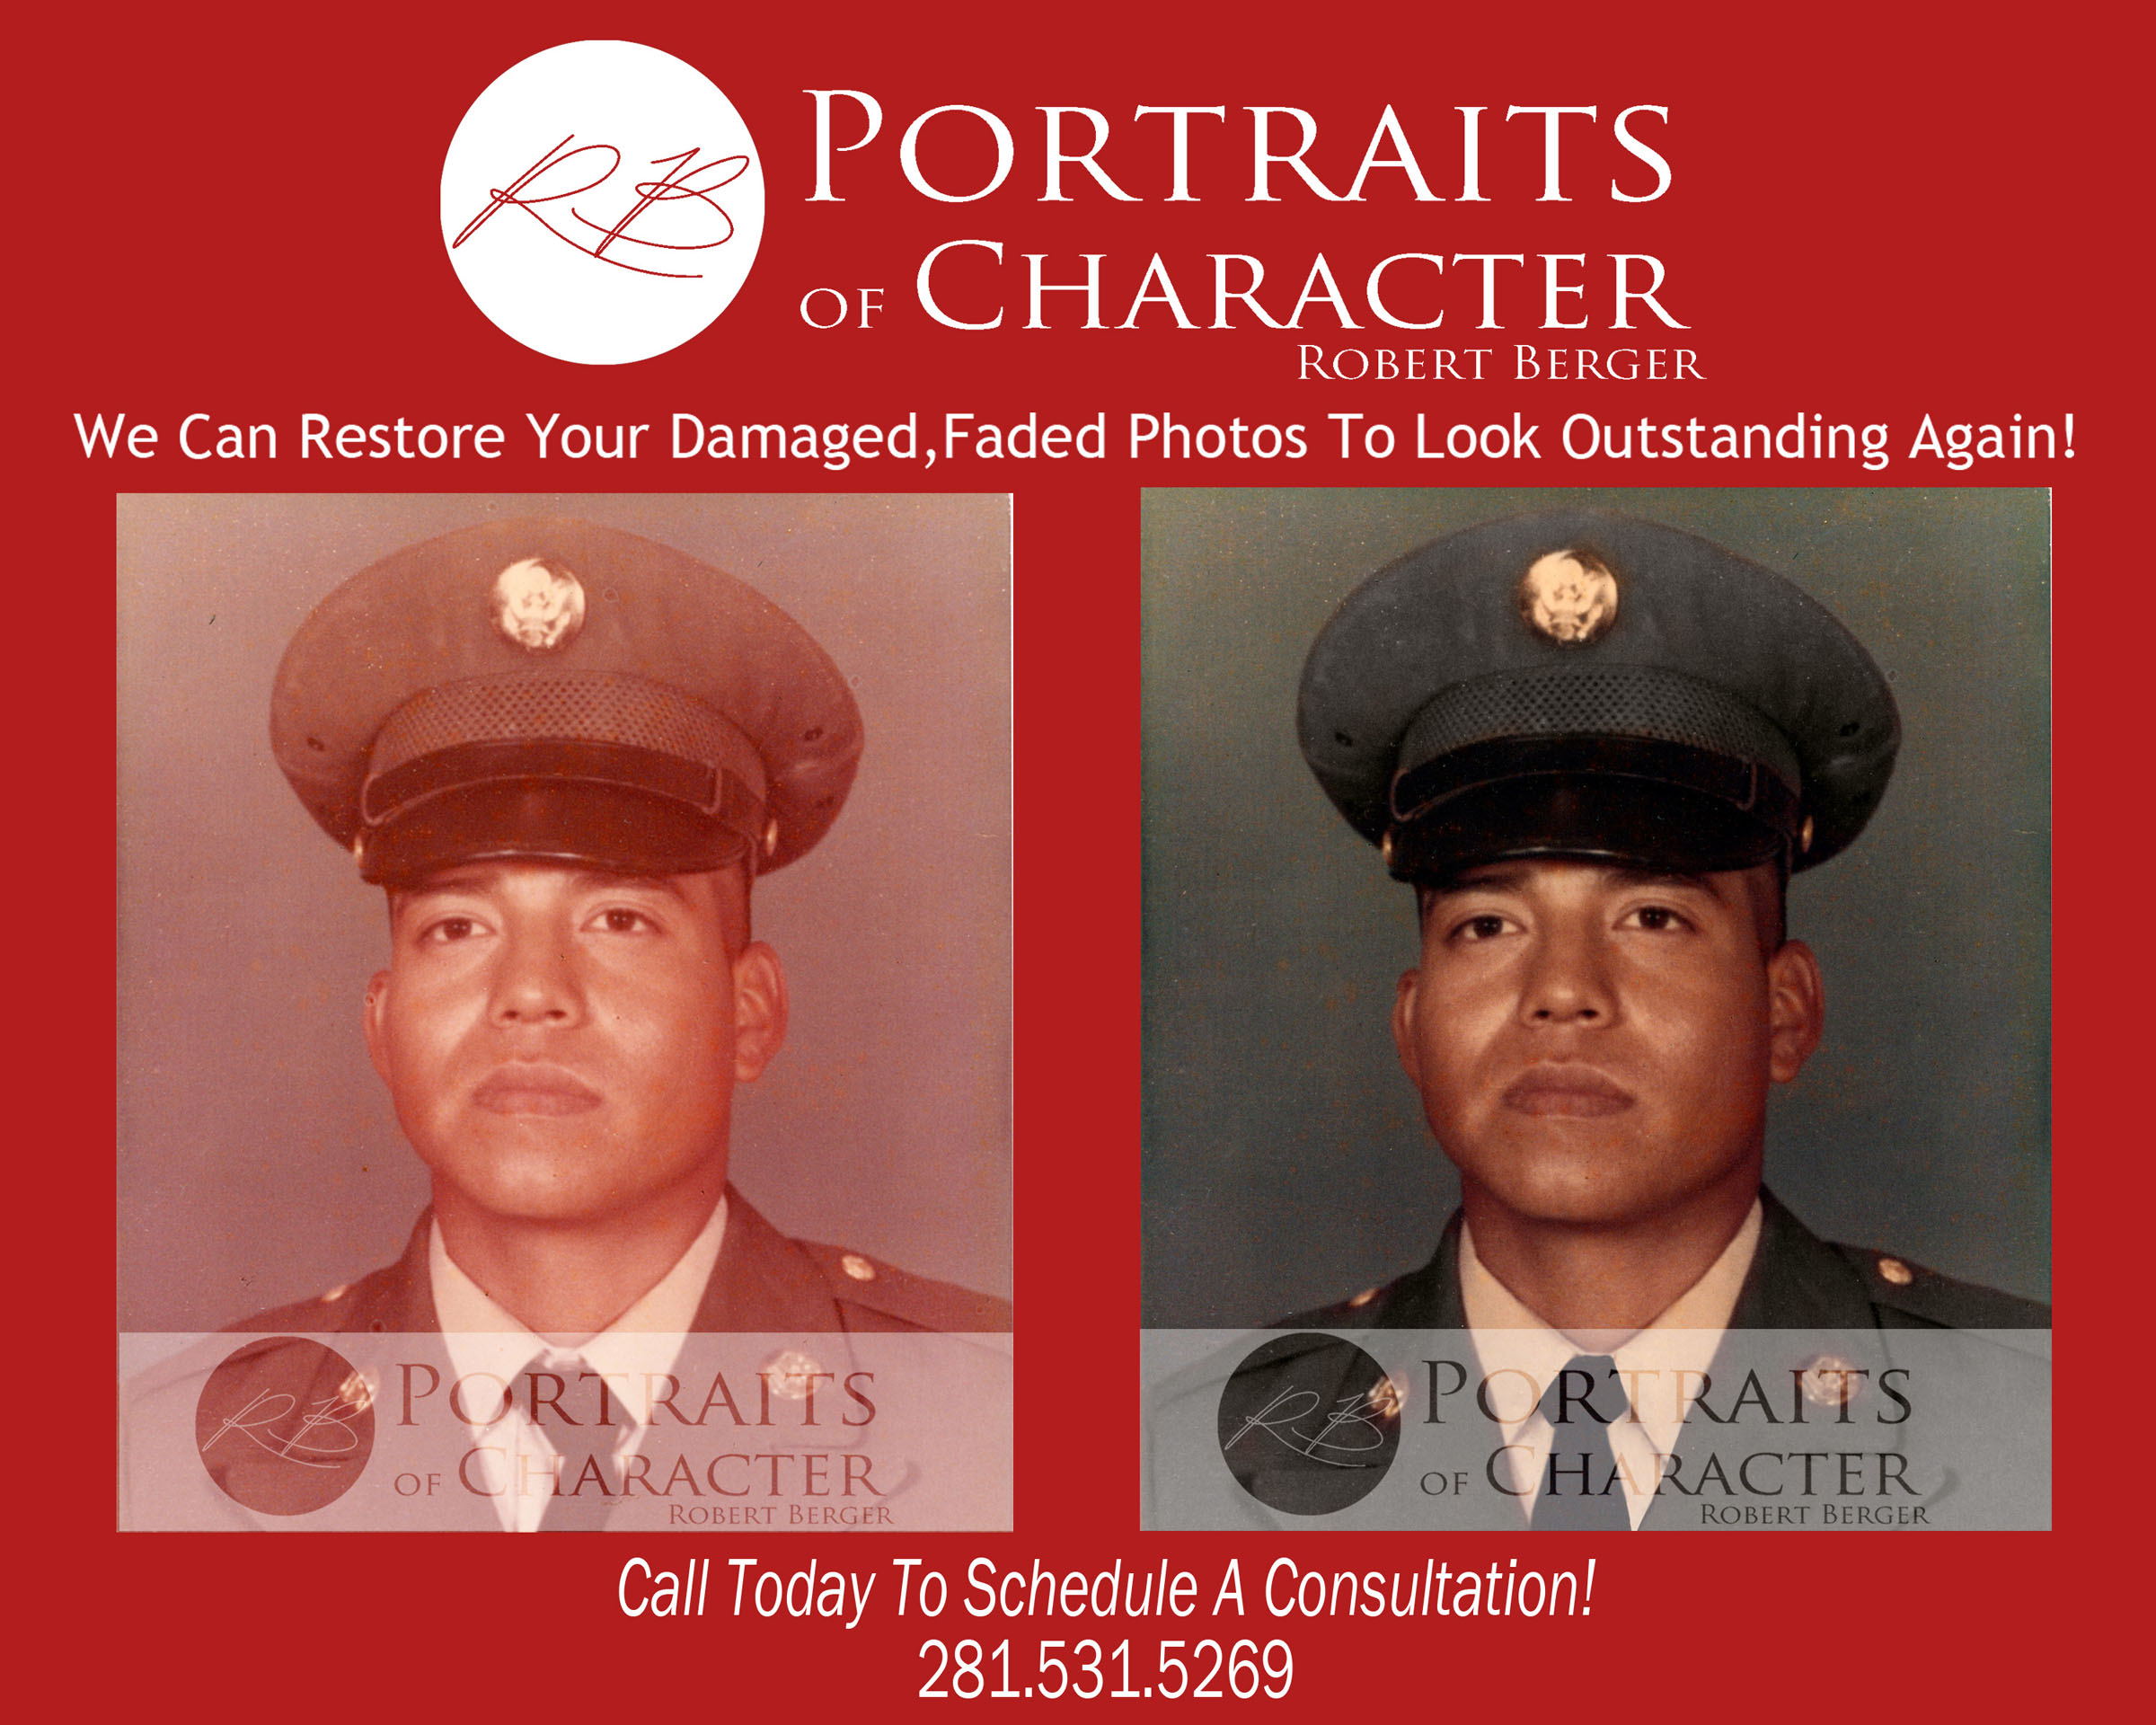 houston photo restoration picture restoration photograph restoration Portraits of Character by Robert Berger serving houston,katy fort bend, Texas 11211 Richmond Ave Suite B101, Houston Texas 77082